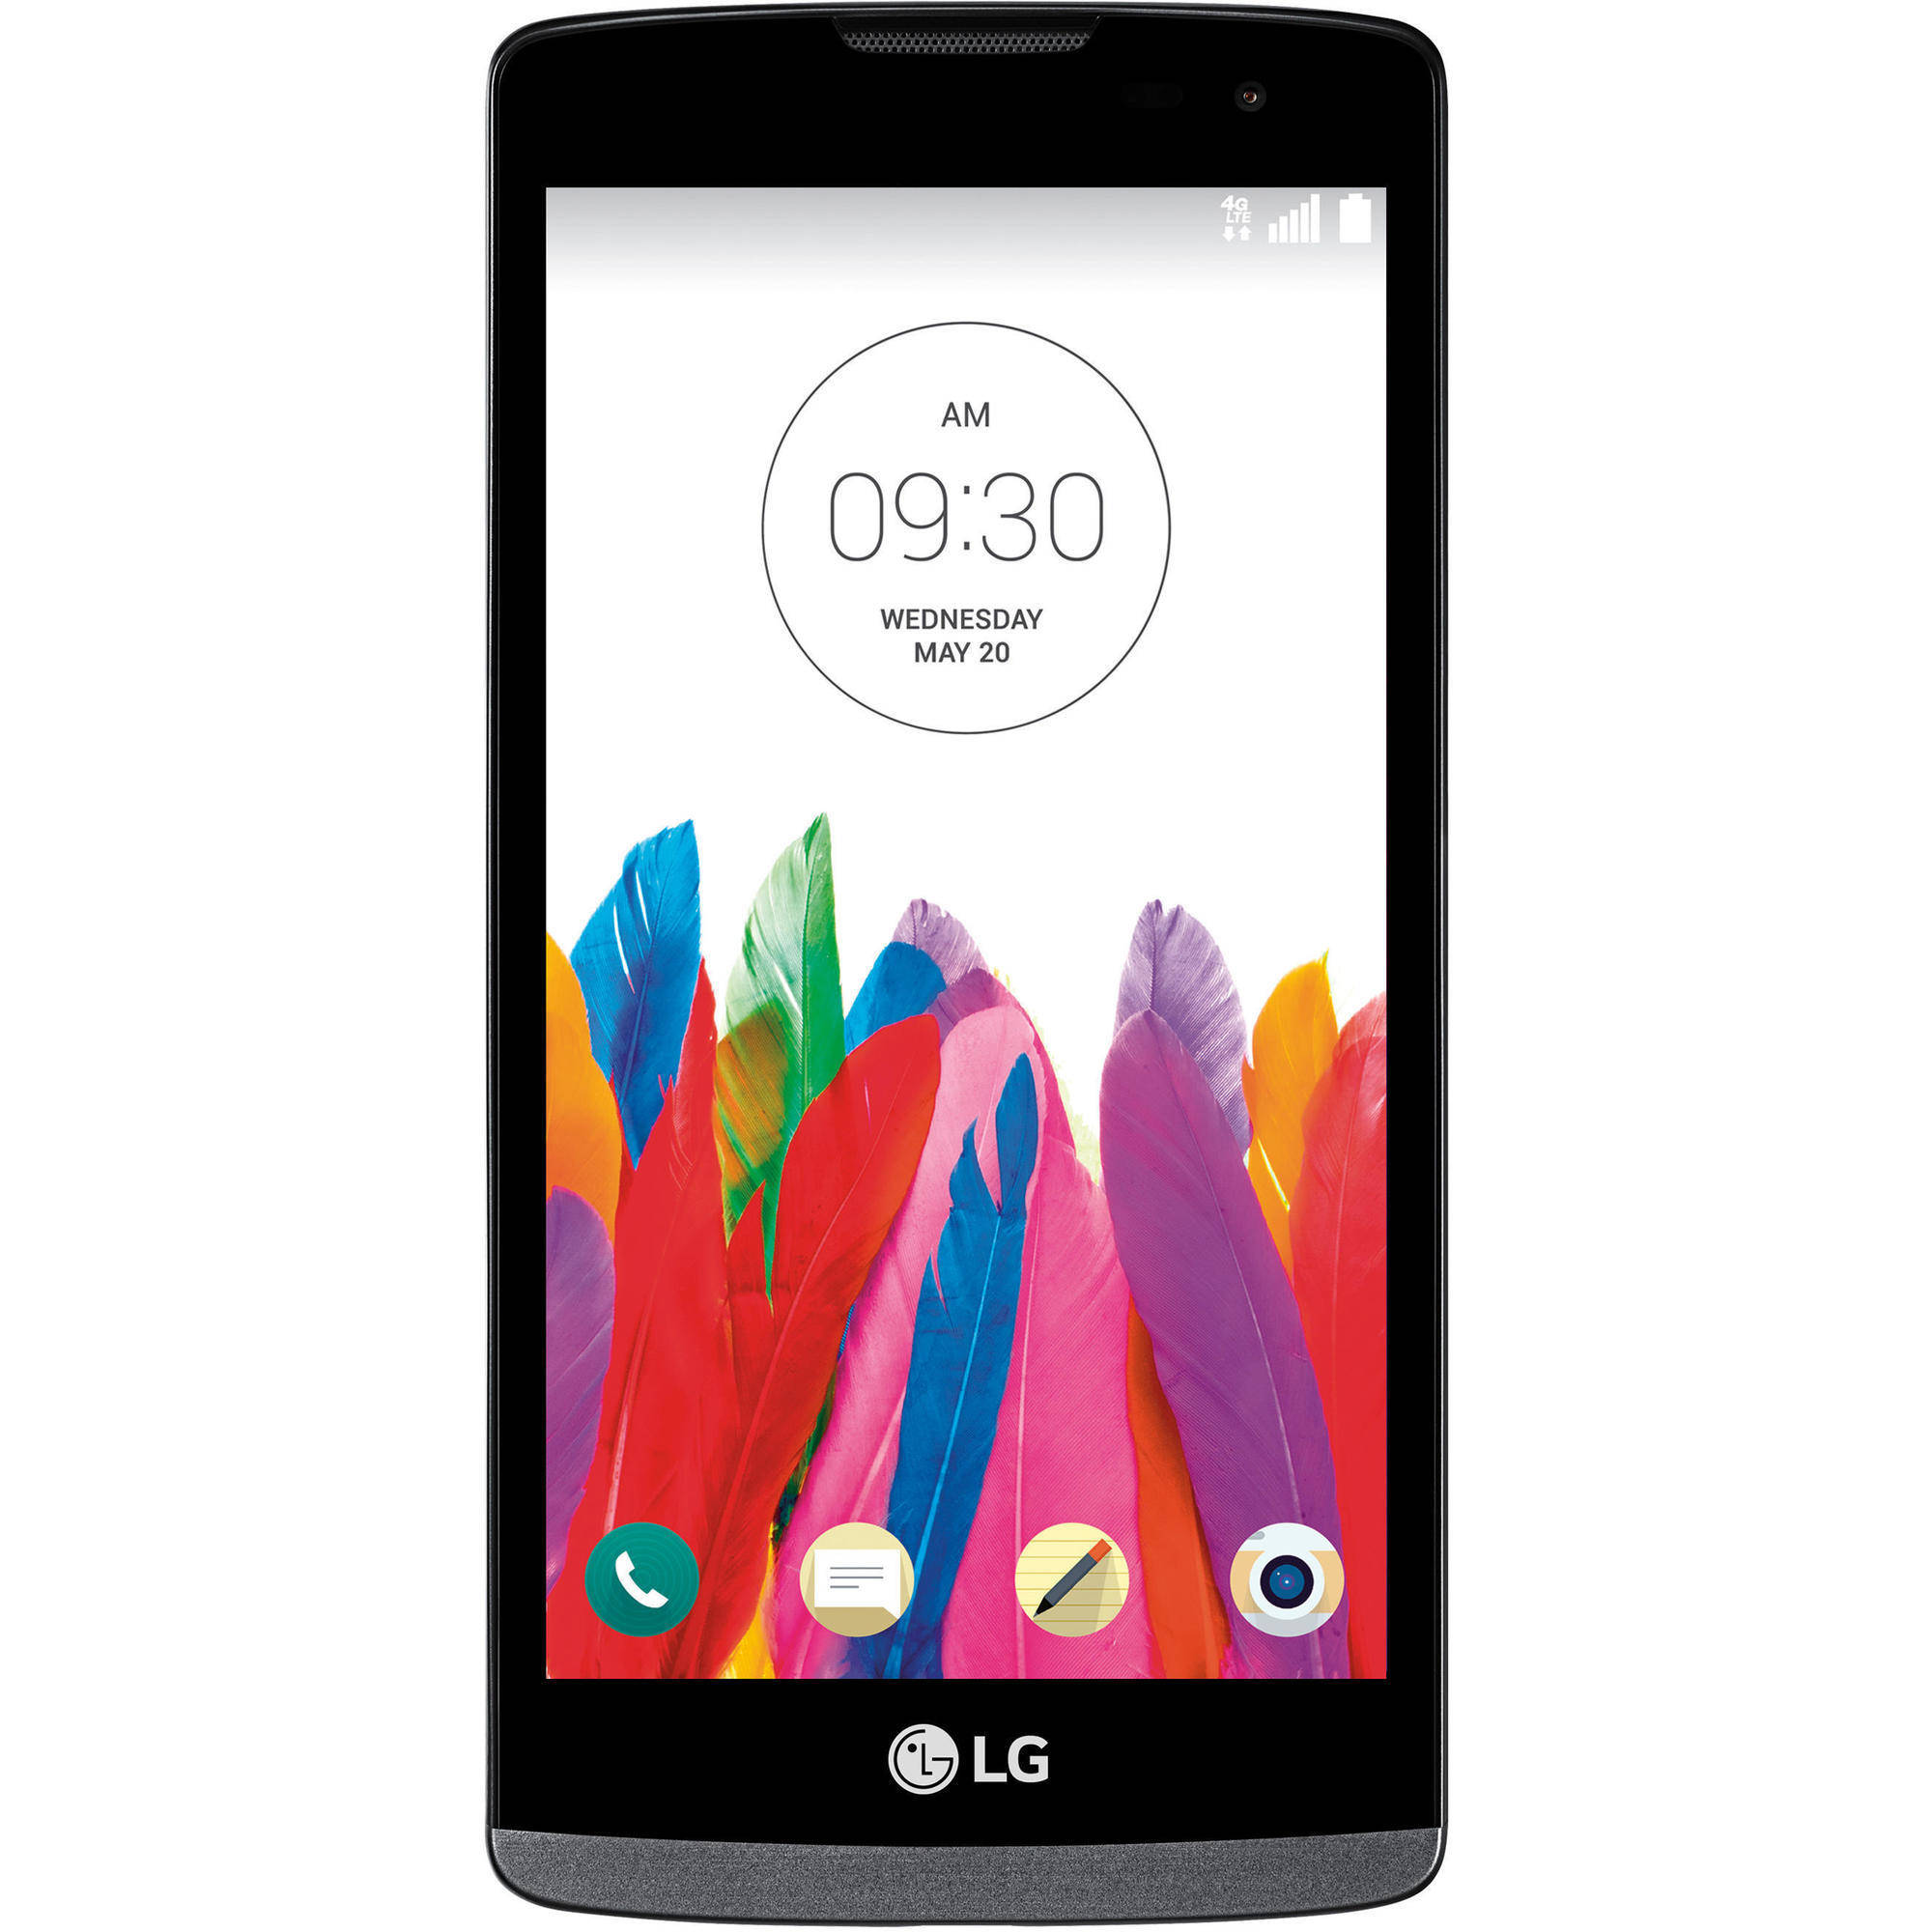 T-Mobile LG Leon LTE Smartphone with Bluetooth Smart v4.0 Technology